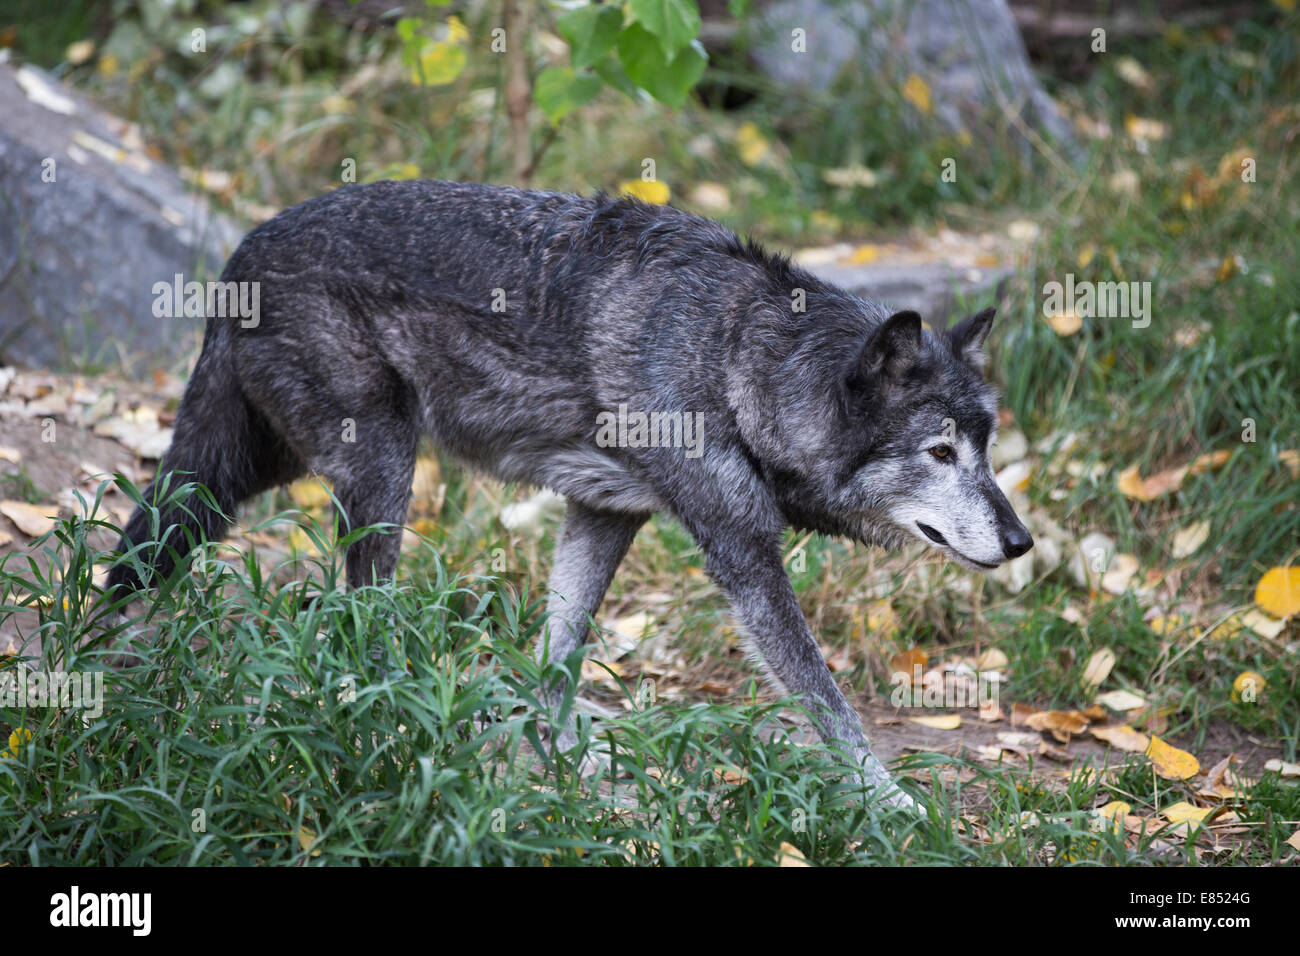 Grey wolf (Canis lupus) in Canadian Wilds zoo exhibit. - Stock Image